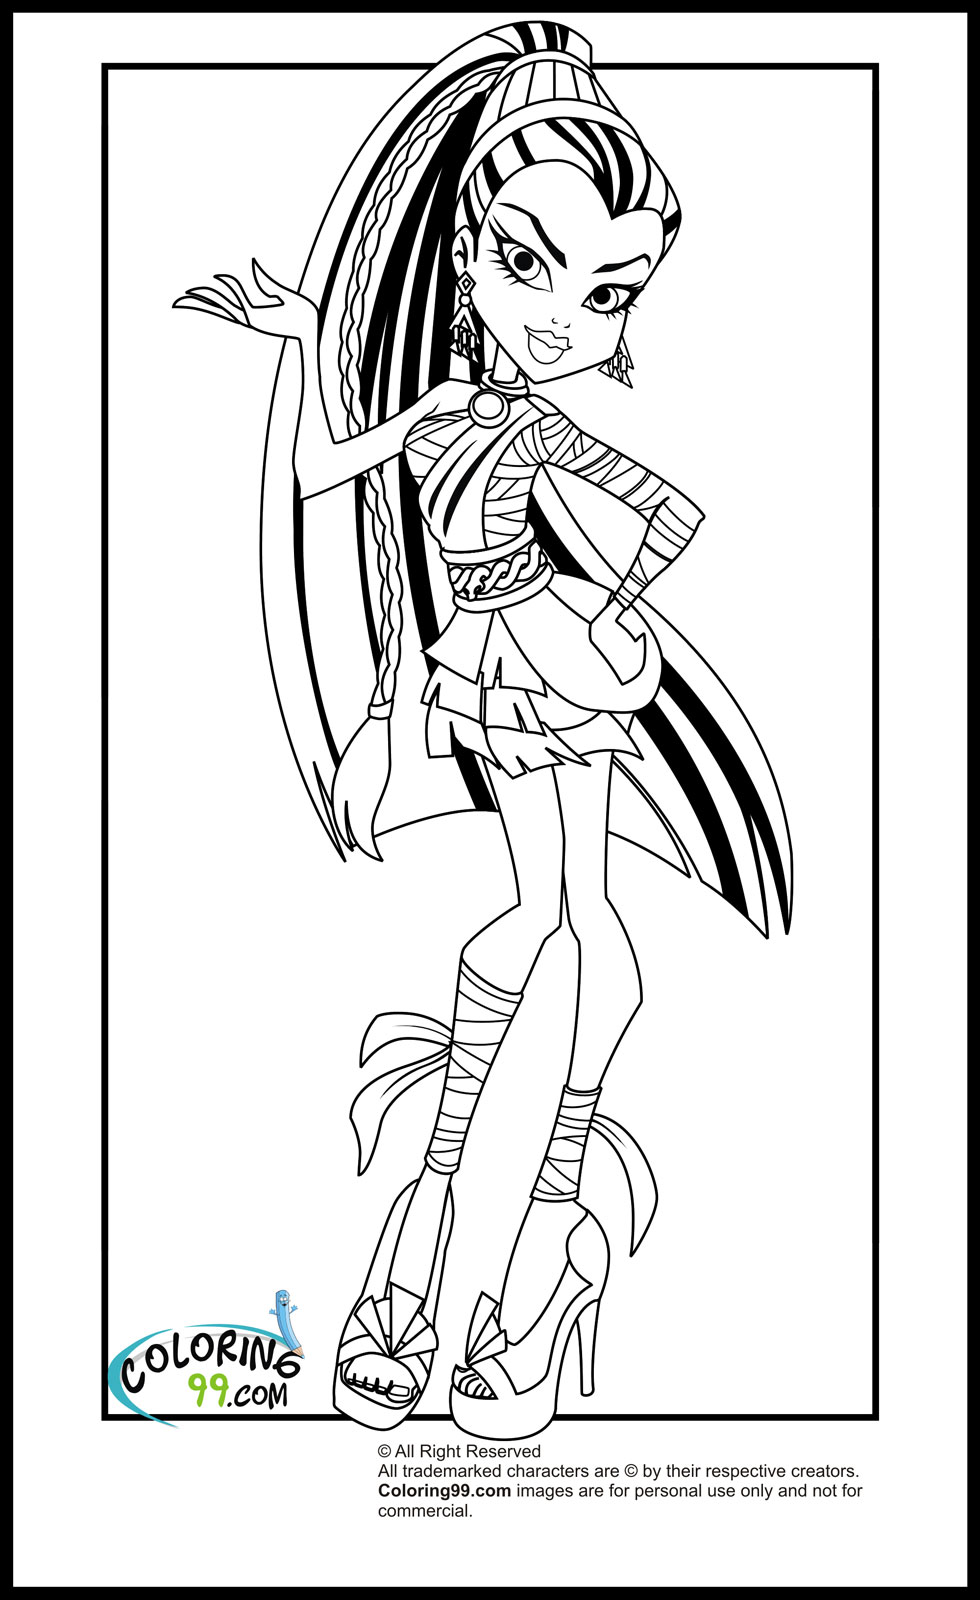 colouring monster high coloring pages monster high coloring pages free and printable monster high colouring